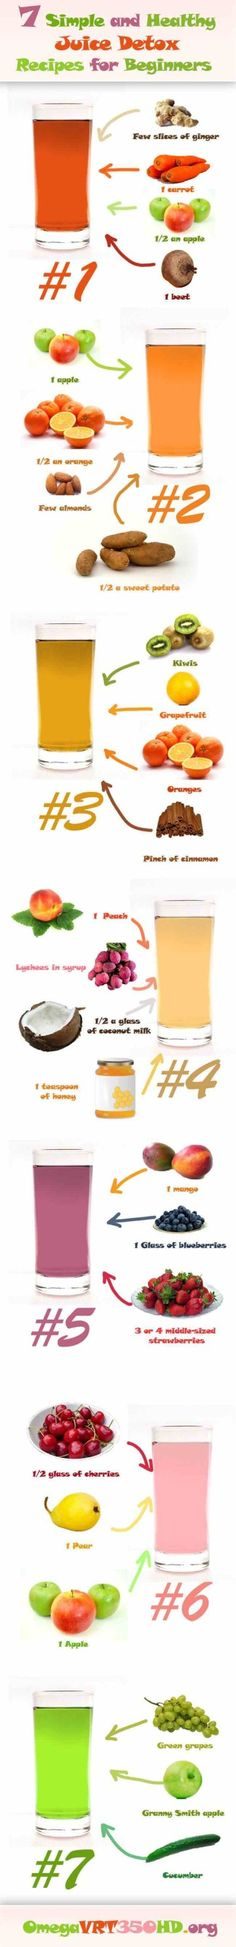 juicing-recipes-12-05052015nz